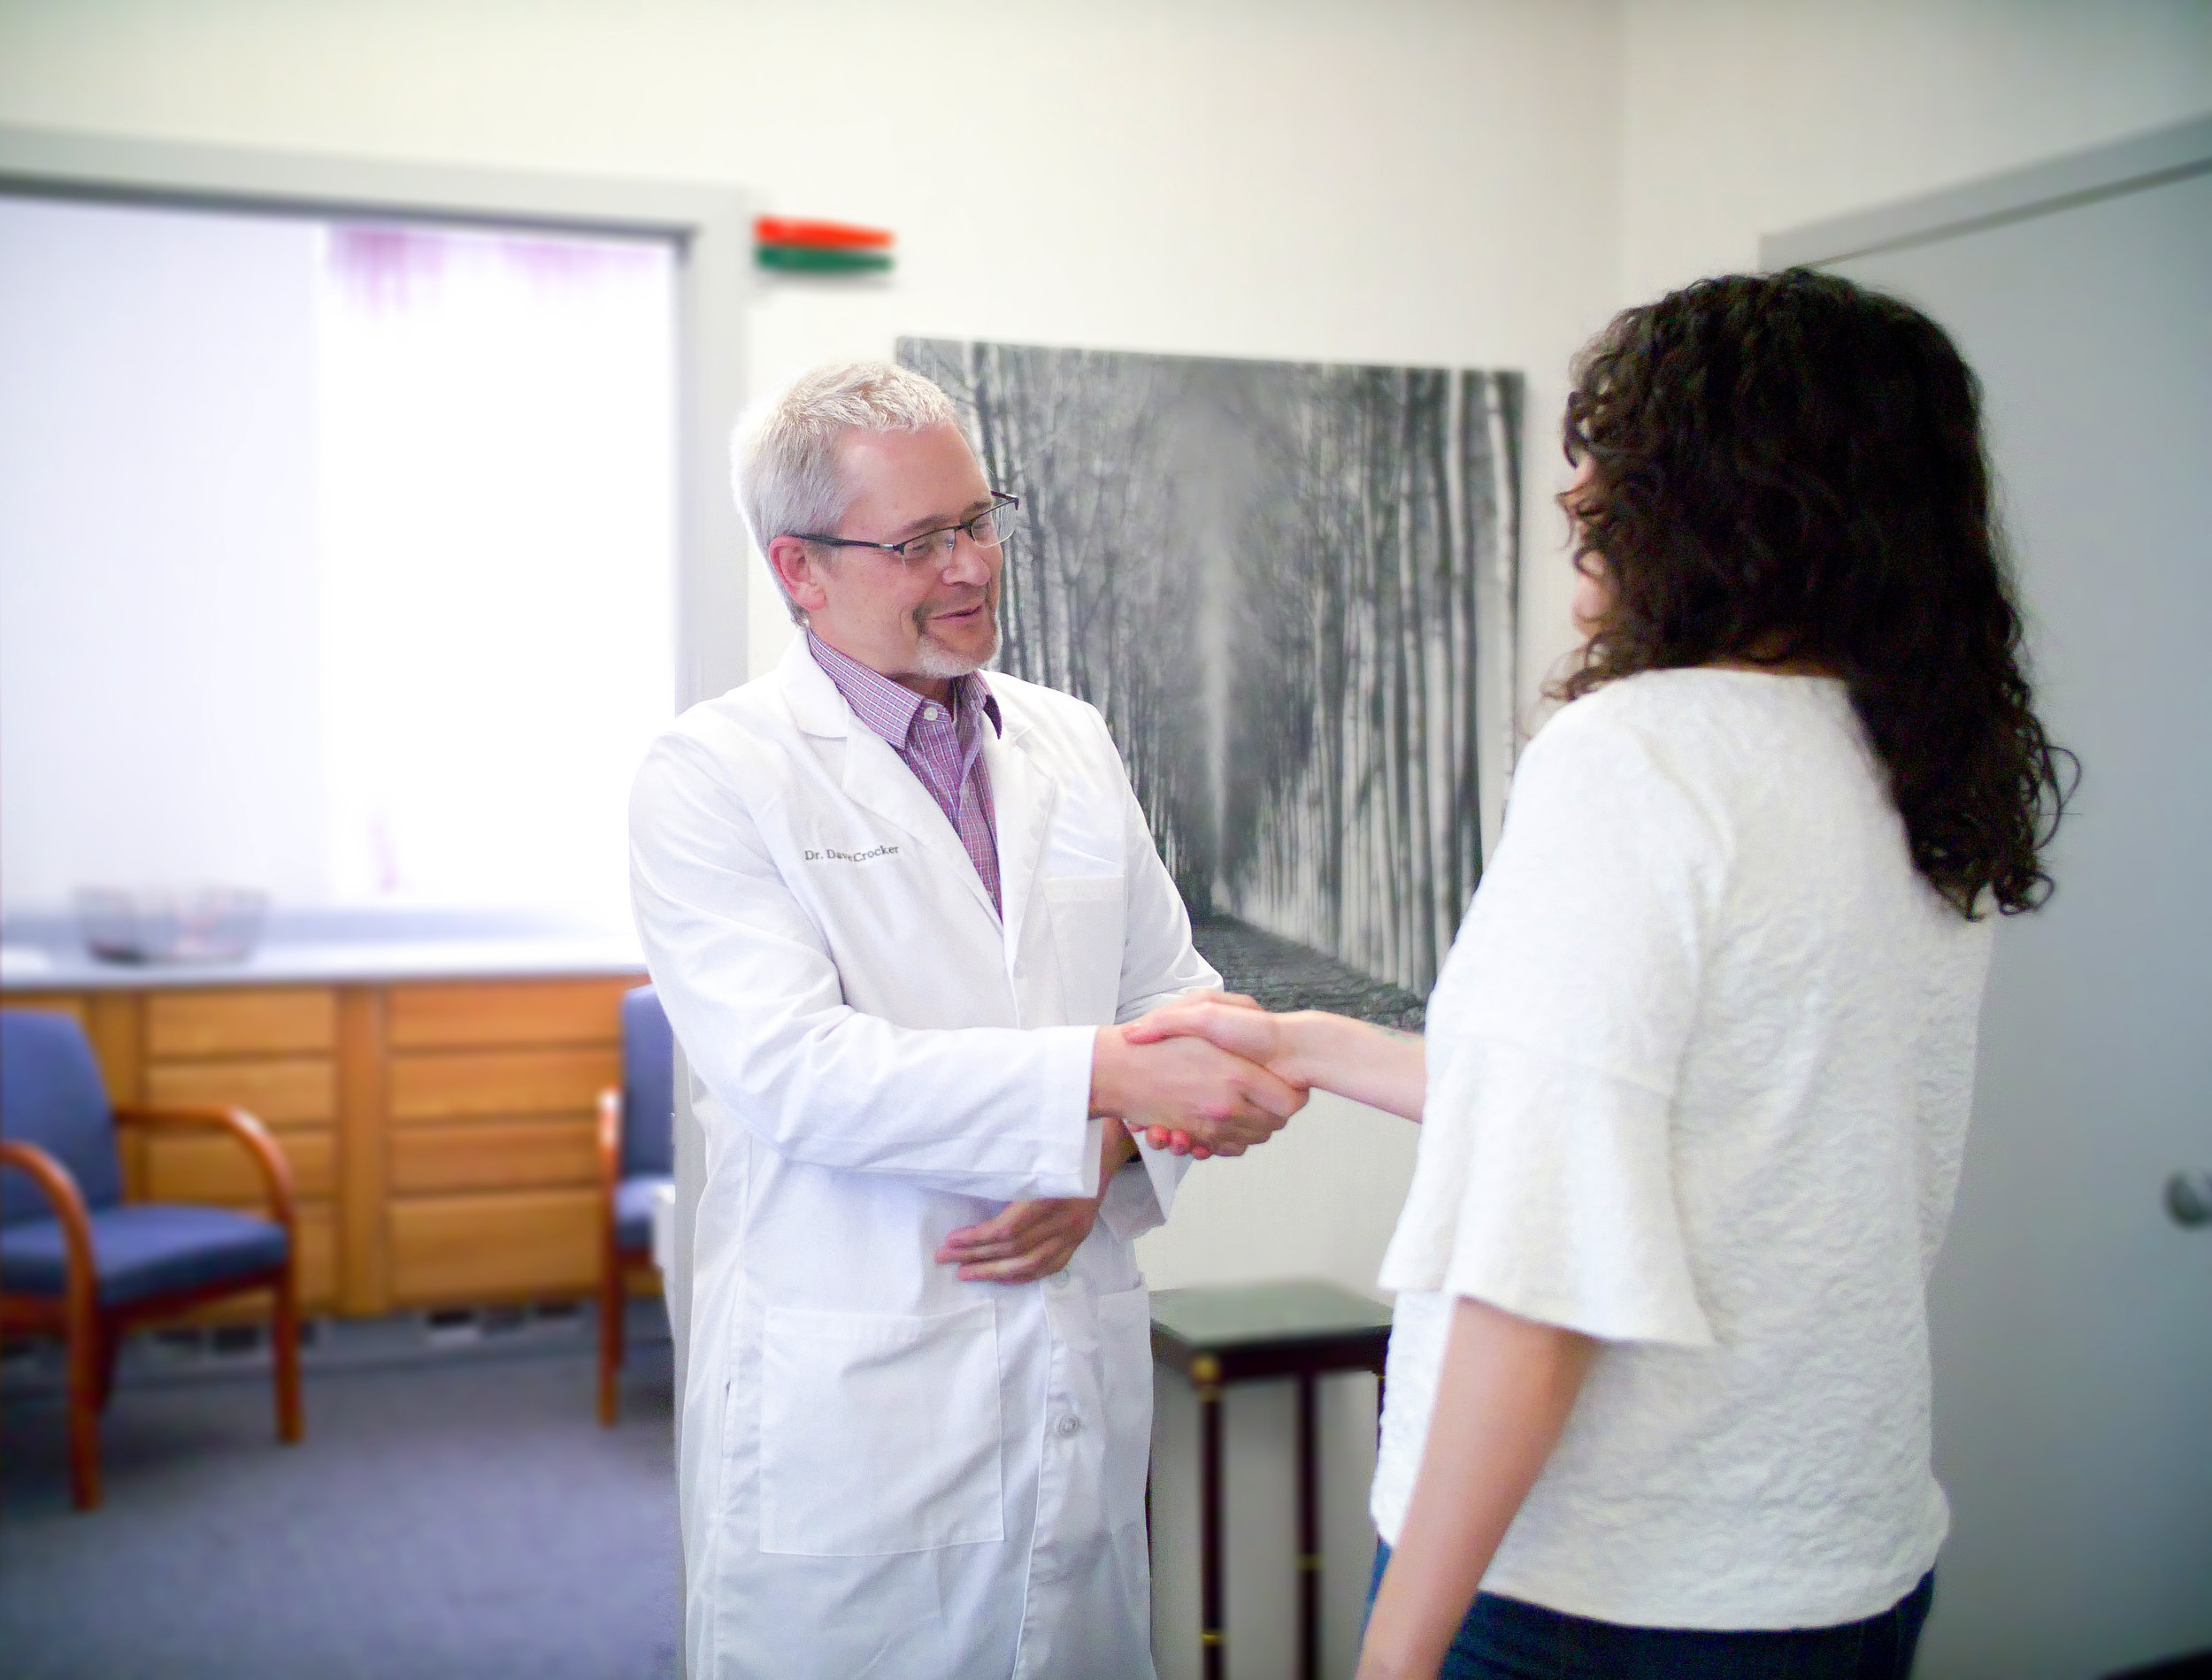 dave greeting patient2.jpg